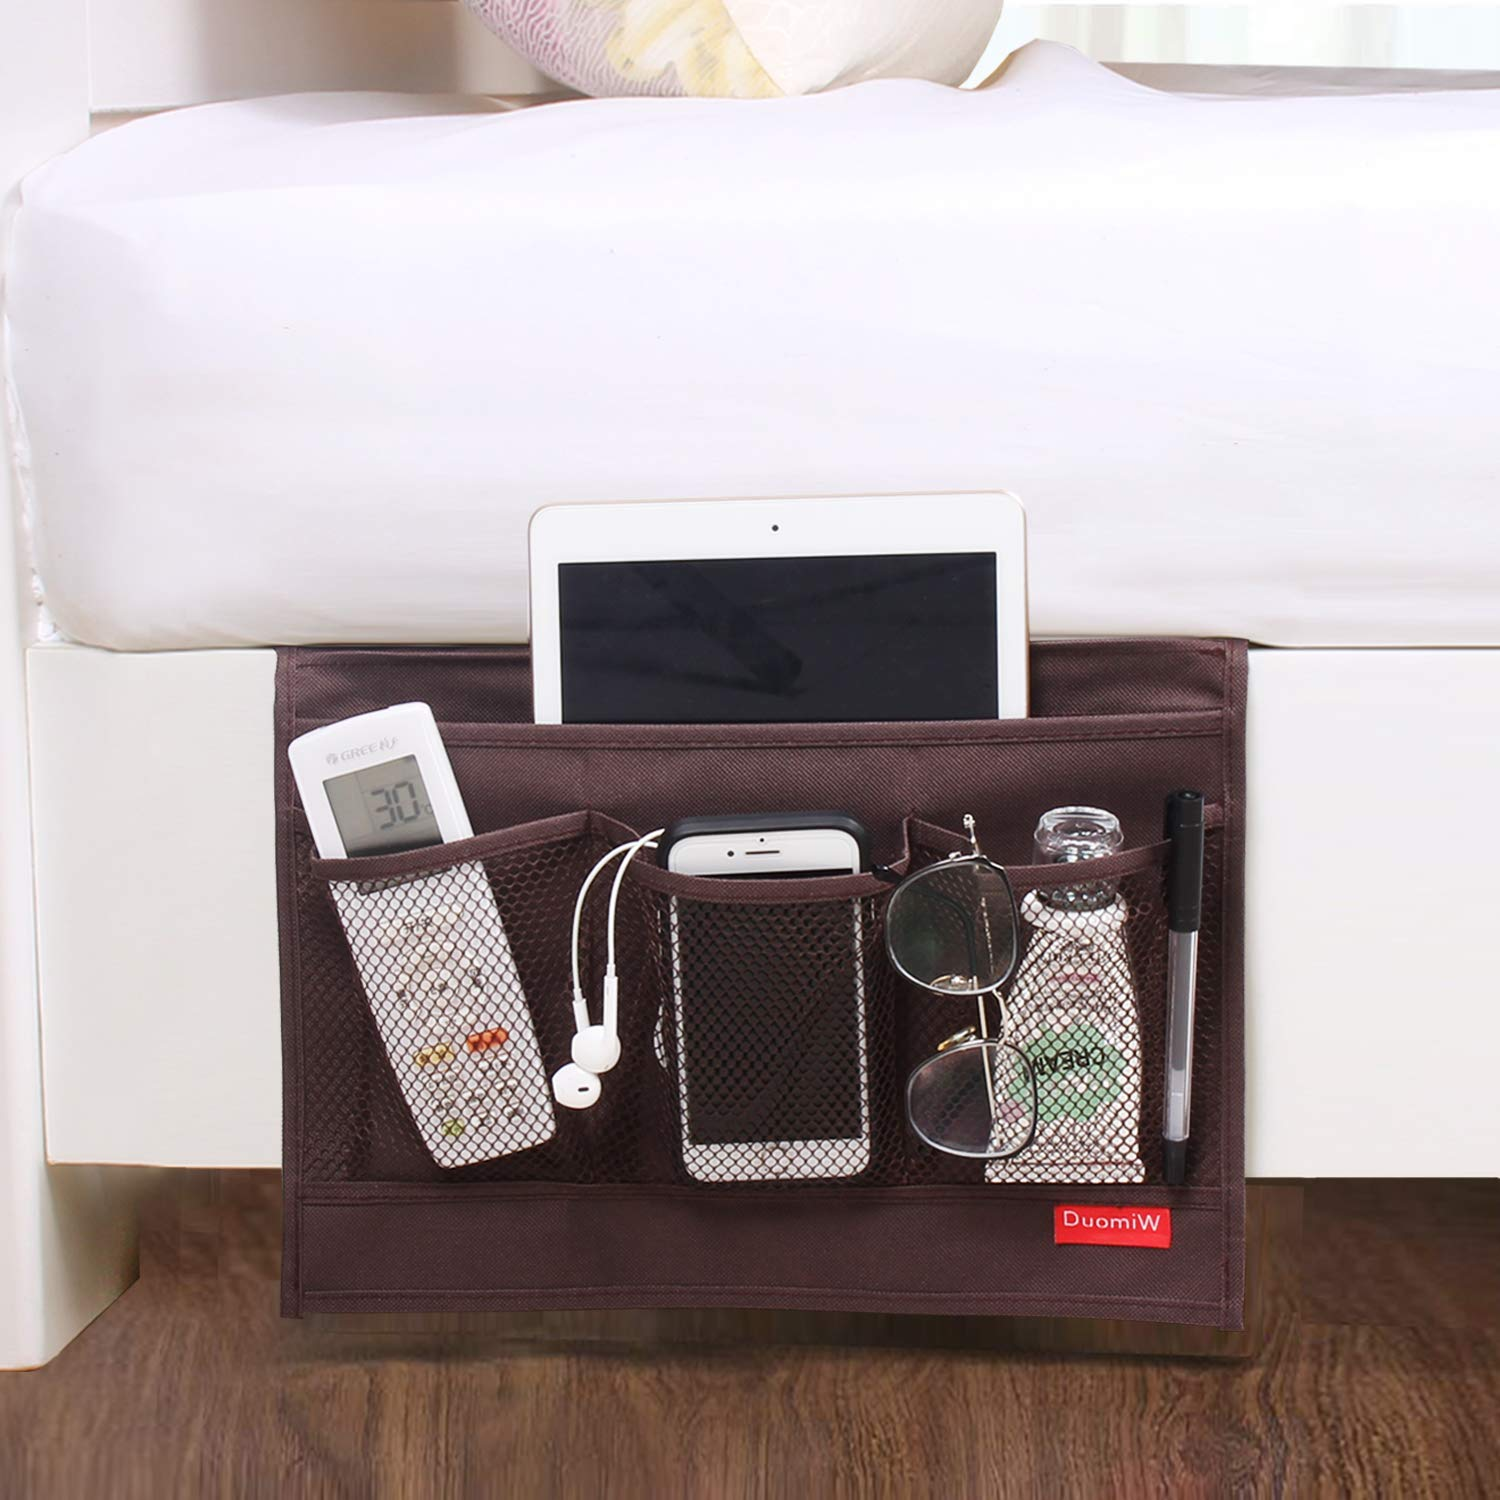 TV Remote Control Accessories Beside Caddy DuomiW Bedside Storage Organizer Tablets Black Phones Magazines Table Cabinet Storage Organizer